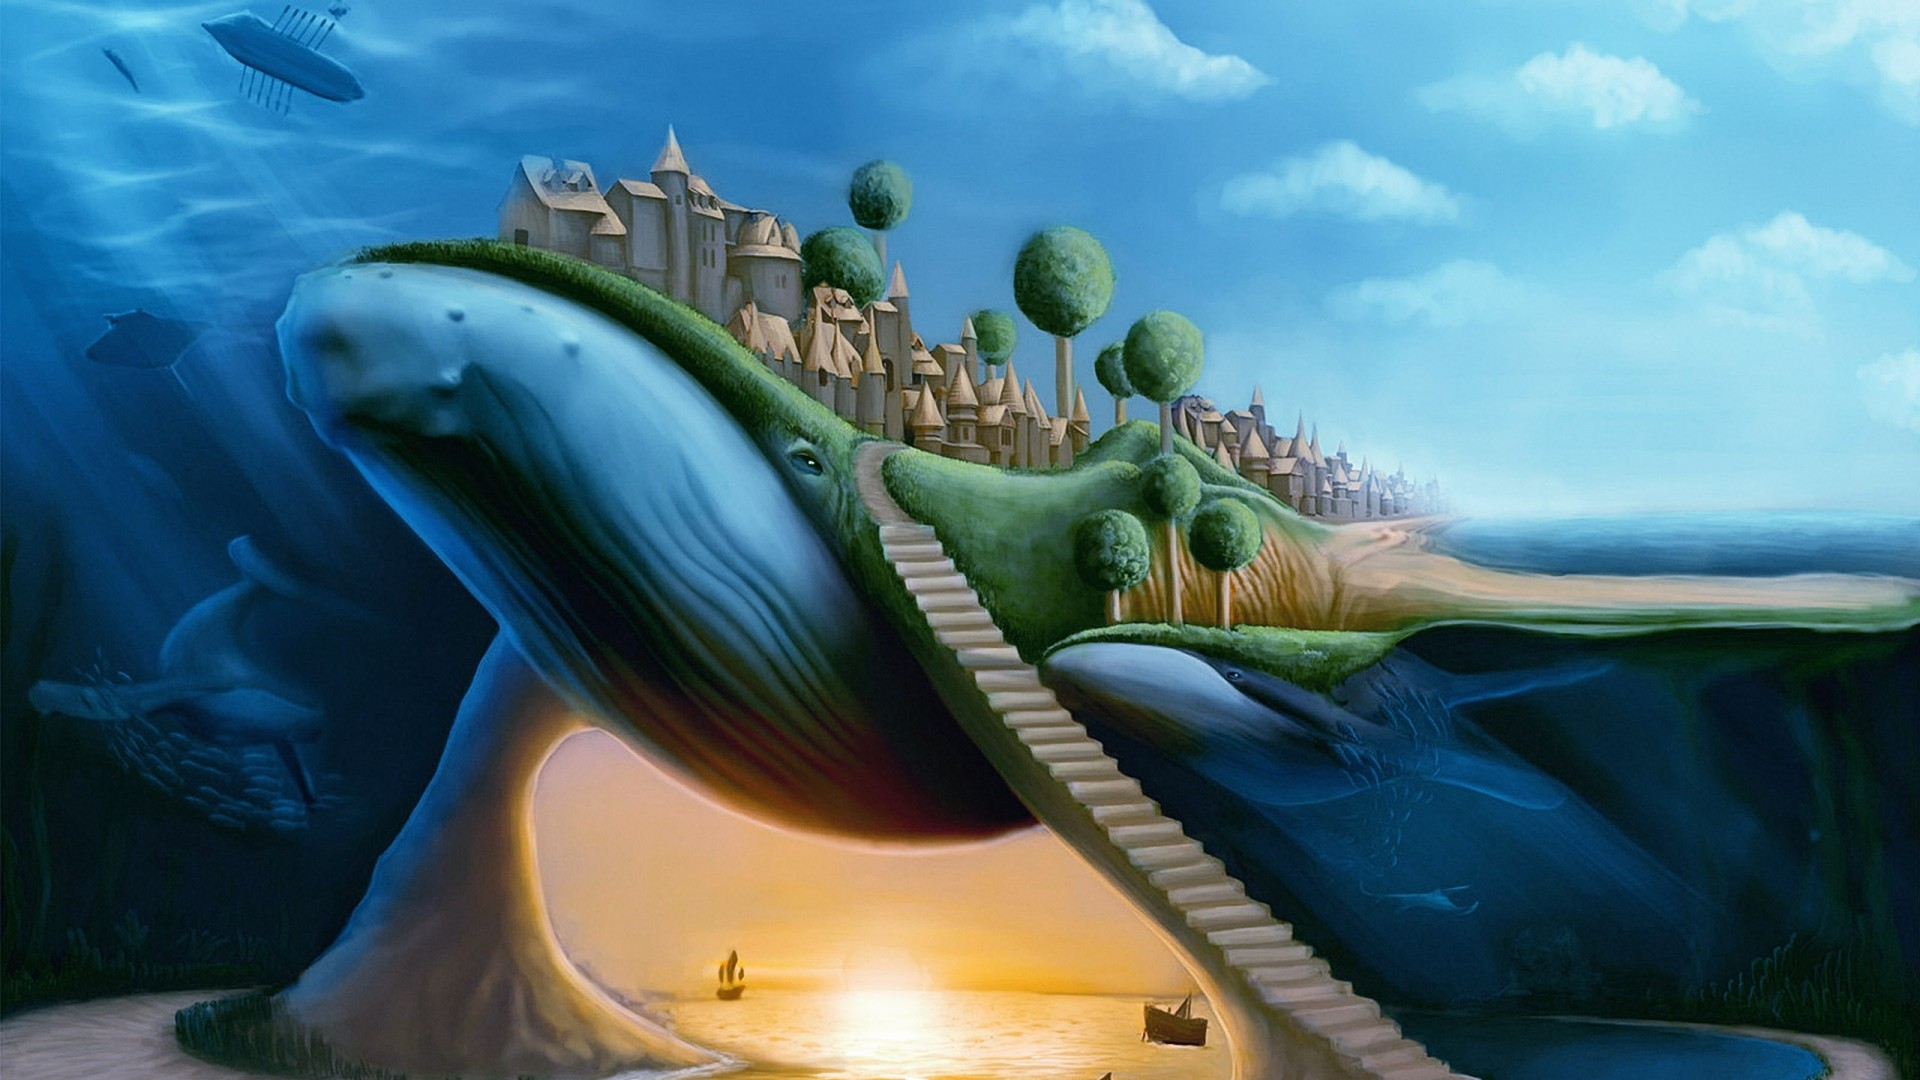 Tablet Backgroundsanimals Fantasy Surreal Funny Images Ocean 1920x1080